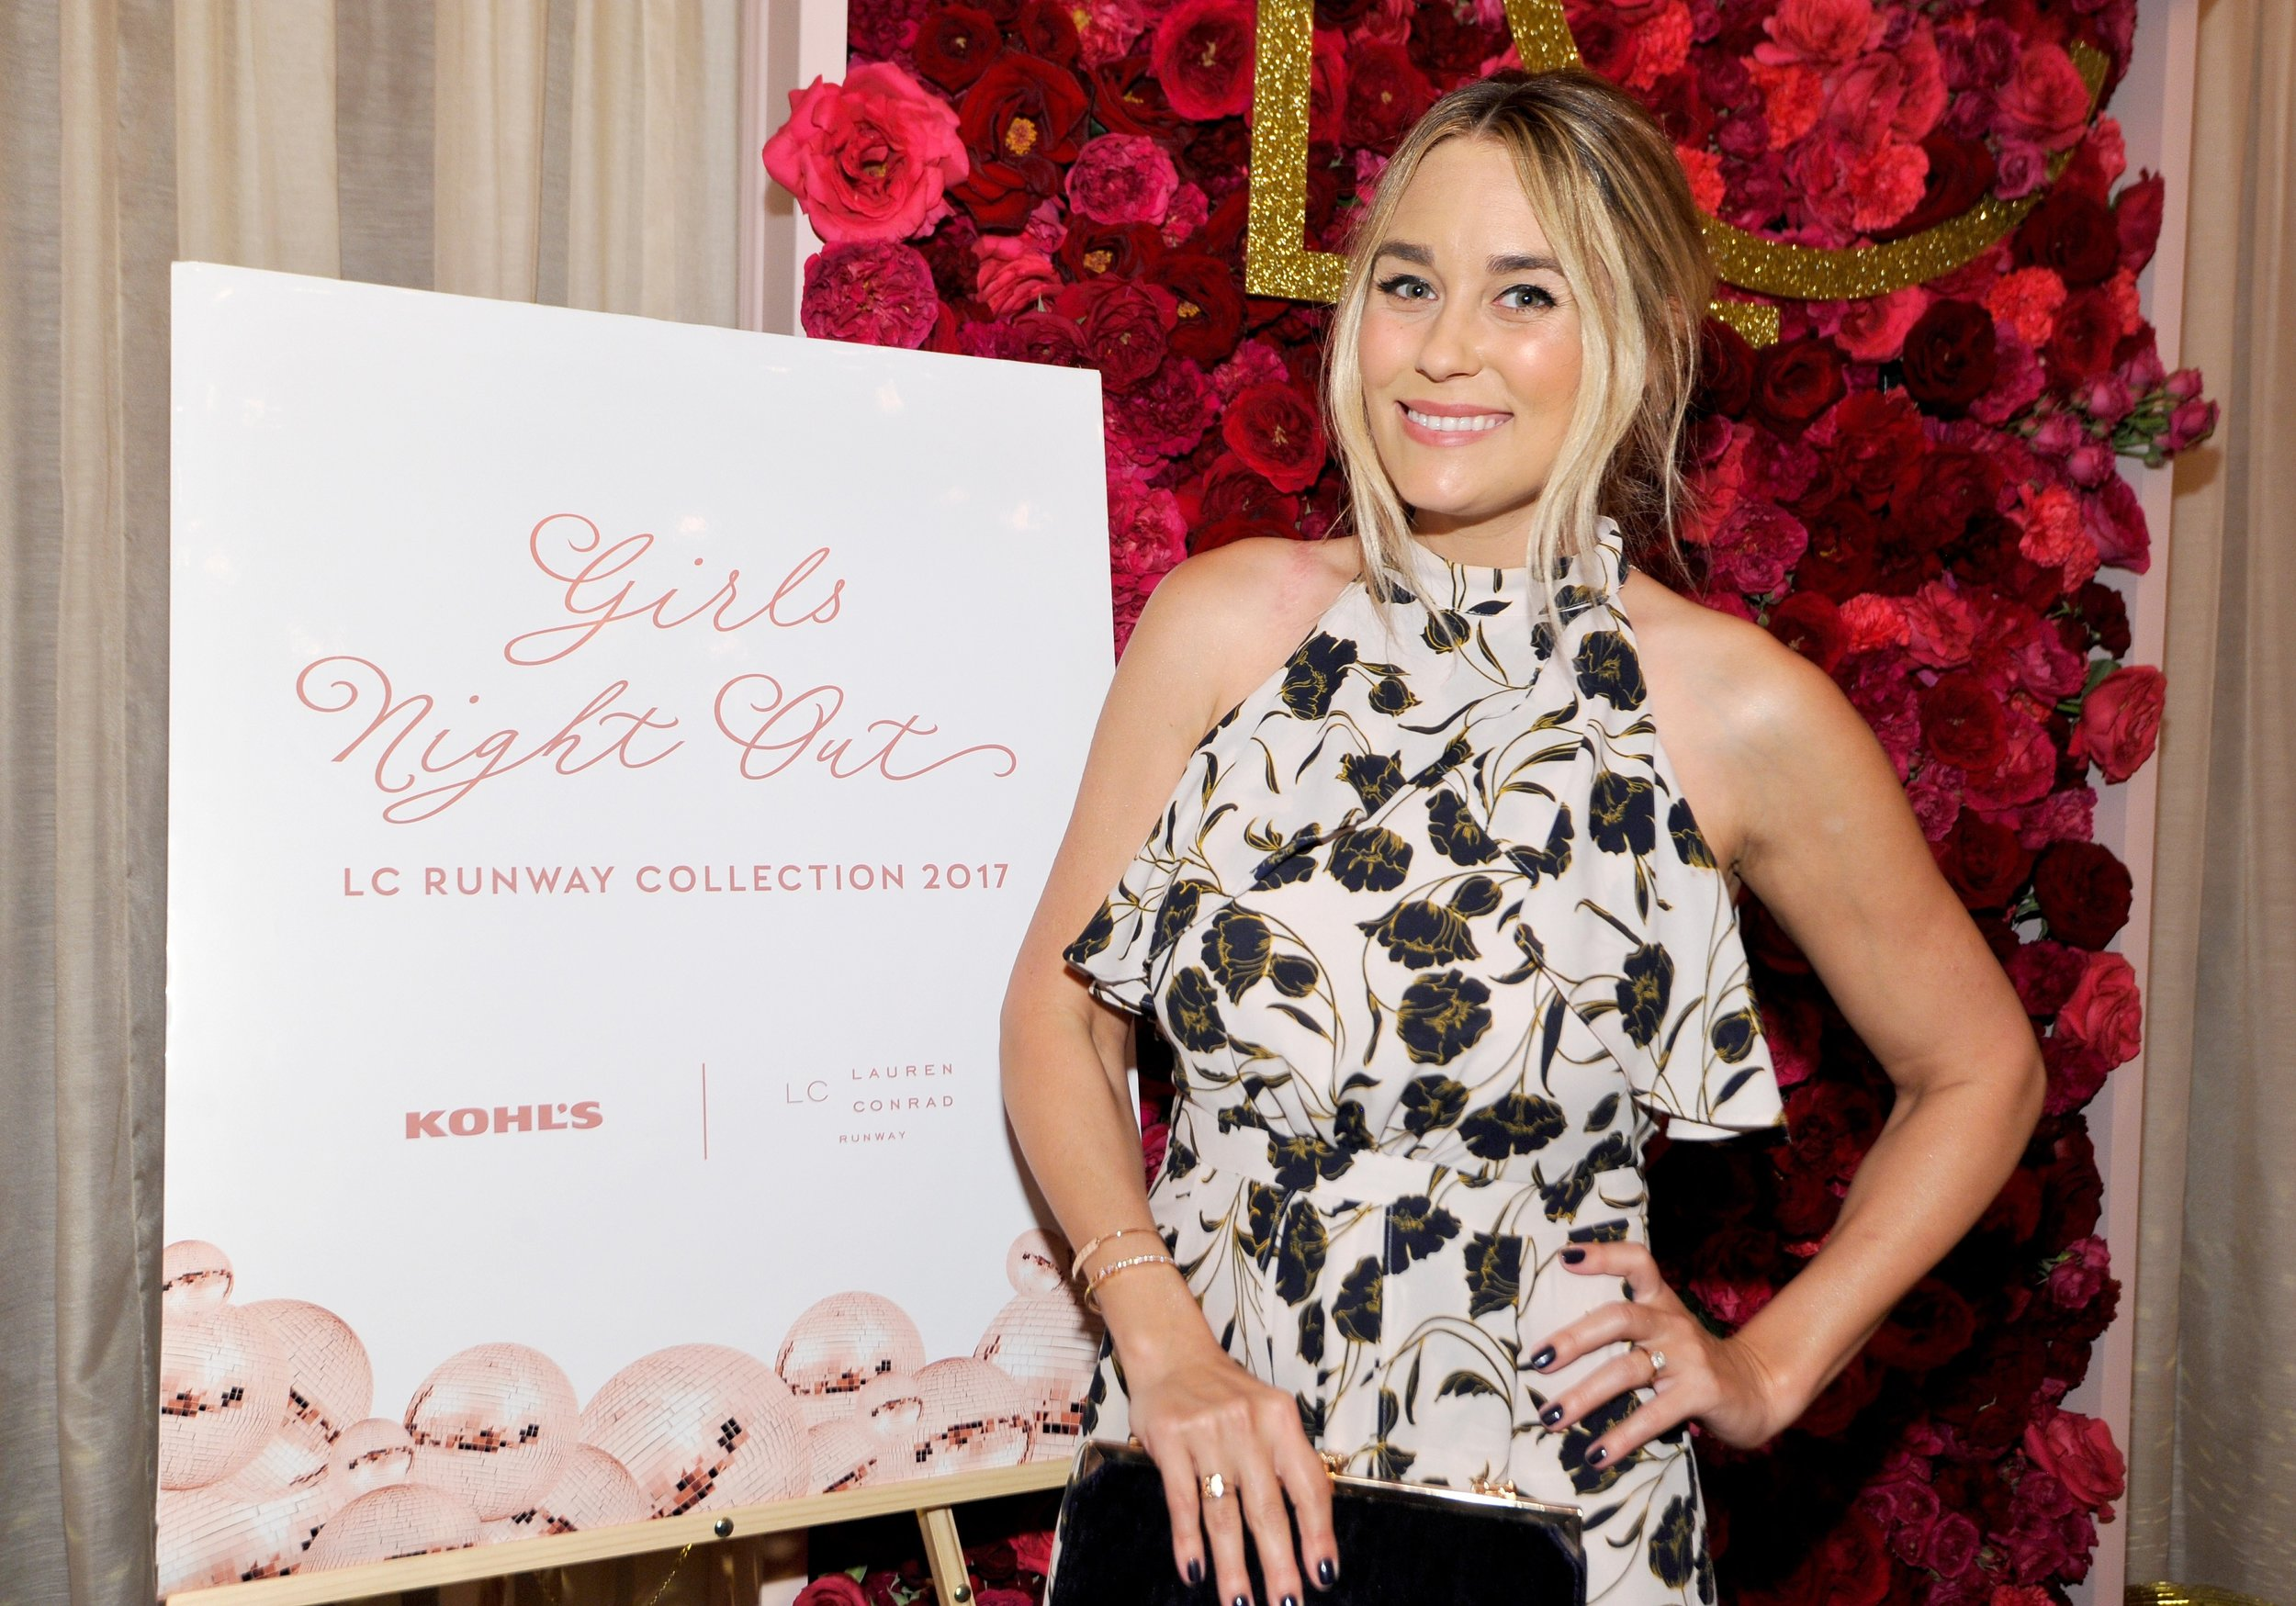 Lauren Conrad at her Girls Night Out event in front of a Yellow Heart Art welcome sign.